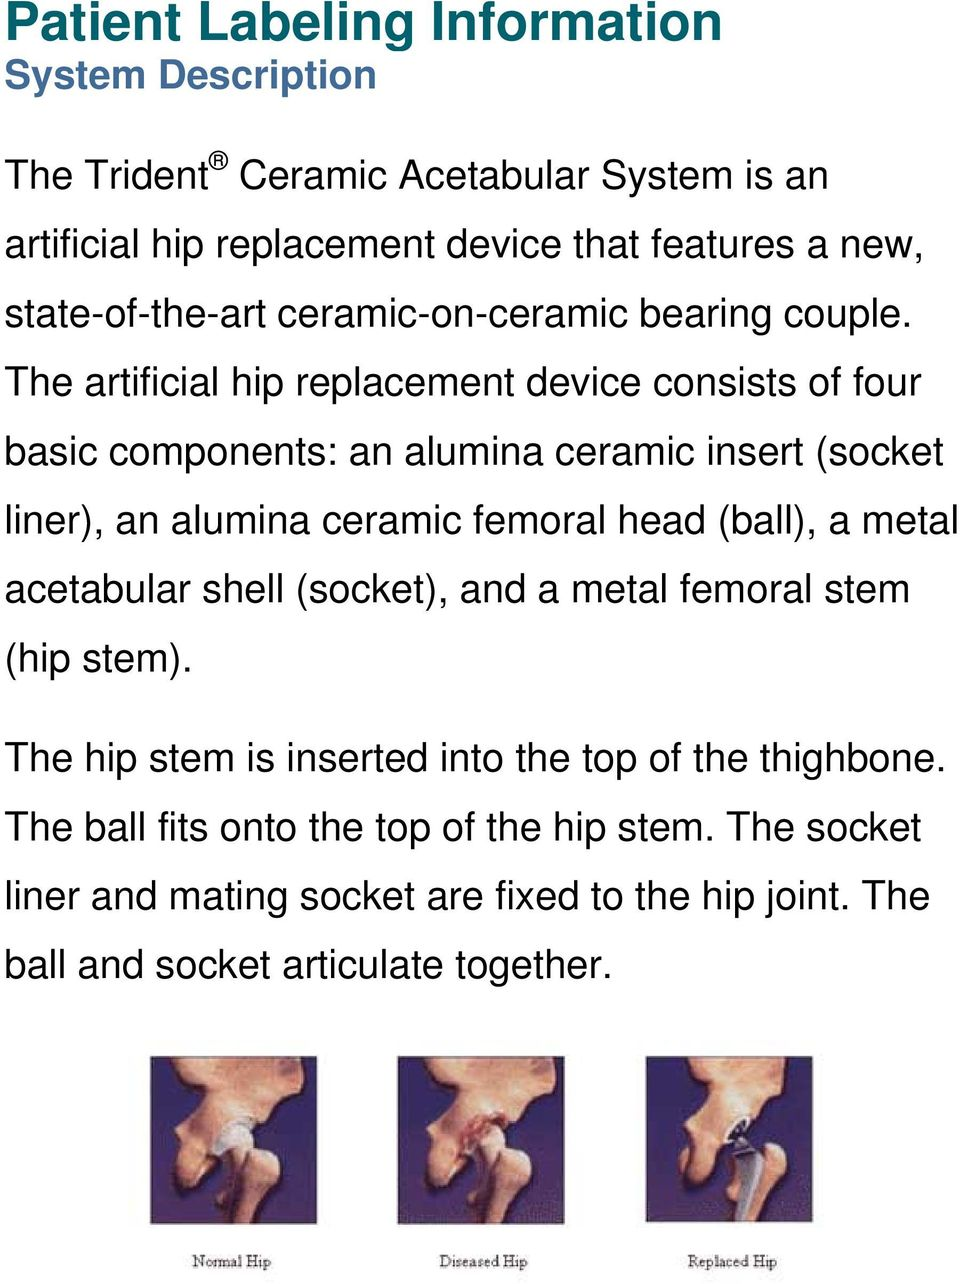 The artificial hip replacement device consists of four basic components: an alumina ceramic insert (socket liner), an alumina ceramic femoral head (ball), a